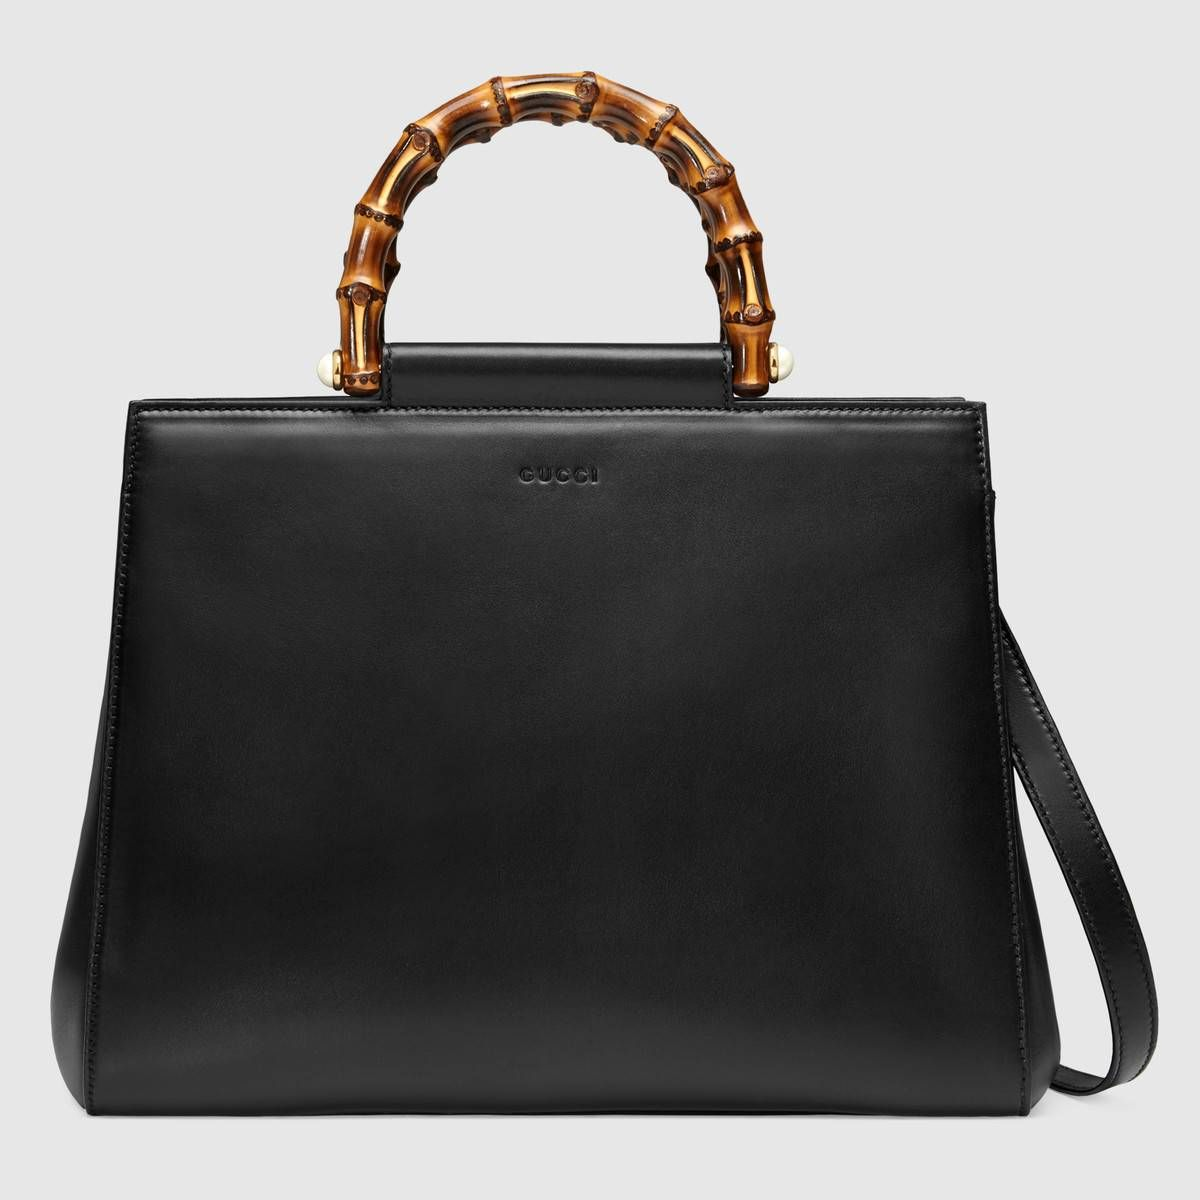 3fde85c34 Gucci Nymphea leather top handle bag | 2017 Prep Lust List | Womens tote  bags, Gucci tote bag, Bags